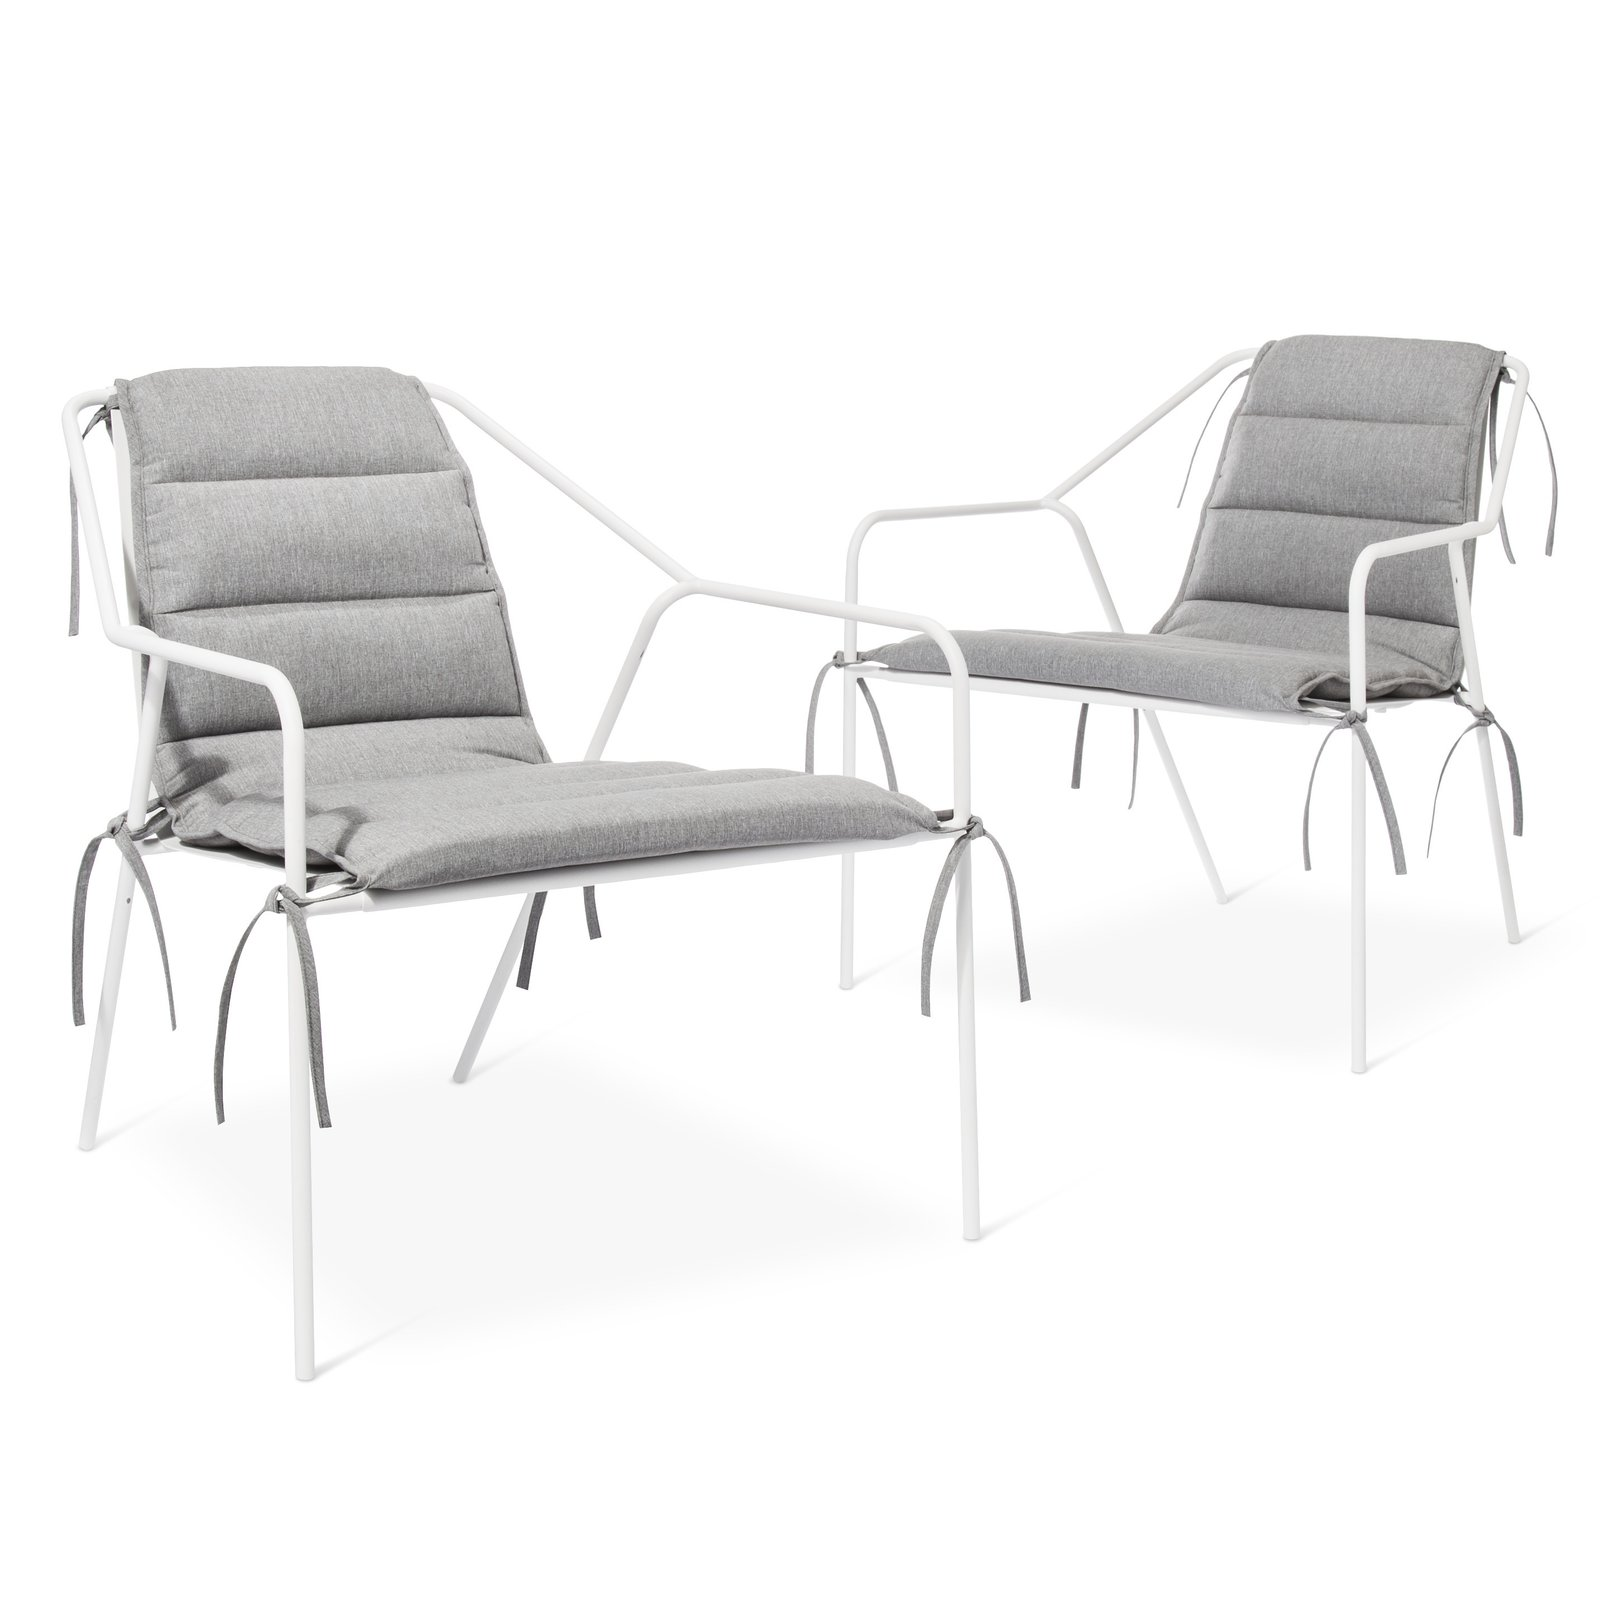 Outdoor Lounge Chair - Set of 2, $269.99, available in gray or white; Cushion - Set of 2, $99.99, available in gray or white; designed by Chris Deam and Nick Dine for Modern by Dwell Magazine for Target   Photo 2 of 17 in Modern by Dwell Magazine: Outdoor Collection